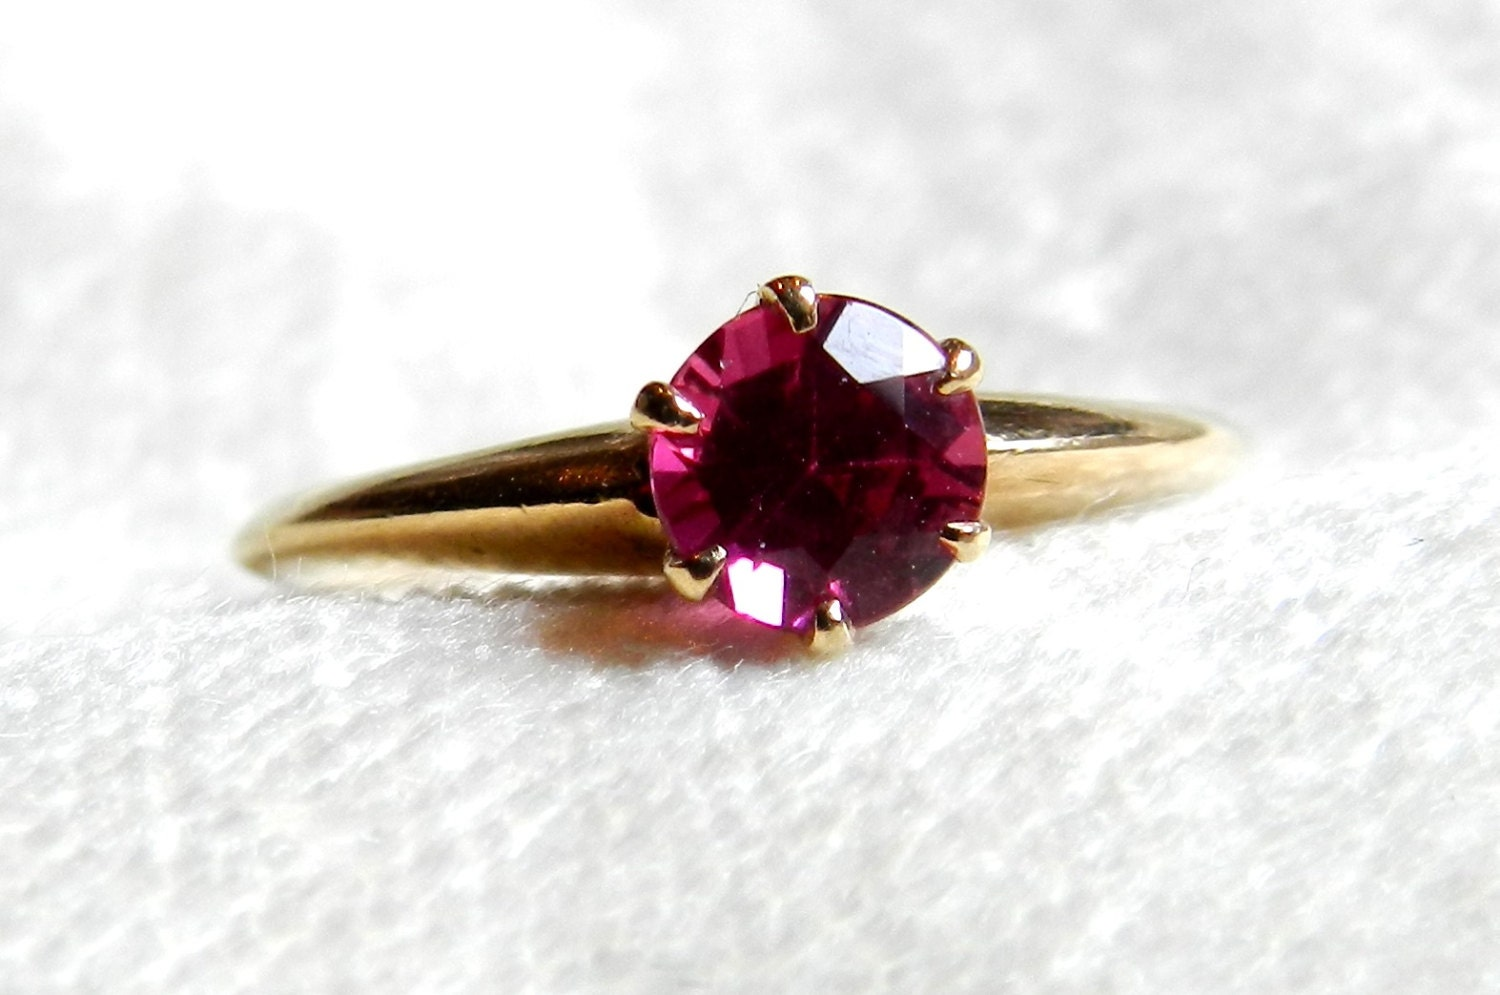 antique pink sapphire engagement ring claw set circa 1910s